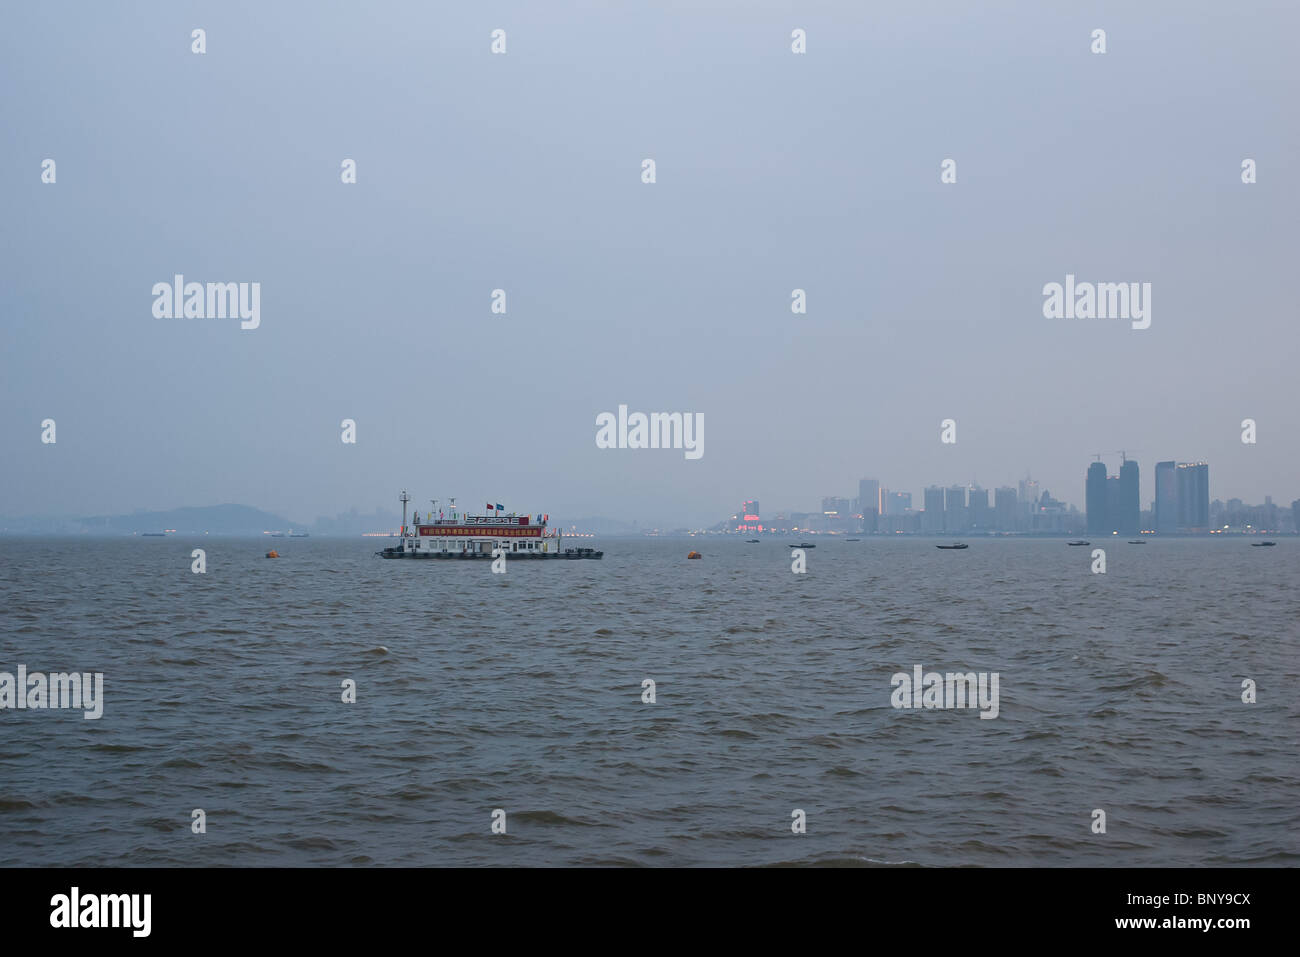 Ken Tam Photography Images - Stock Image